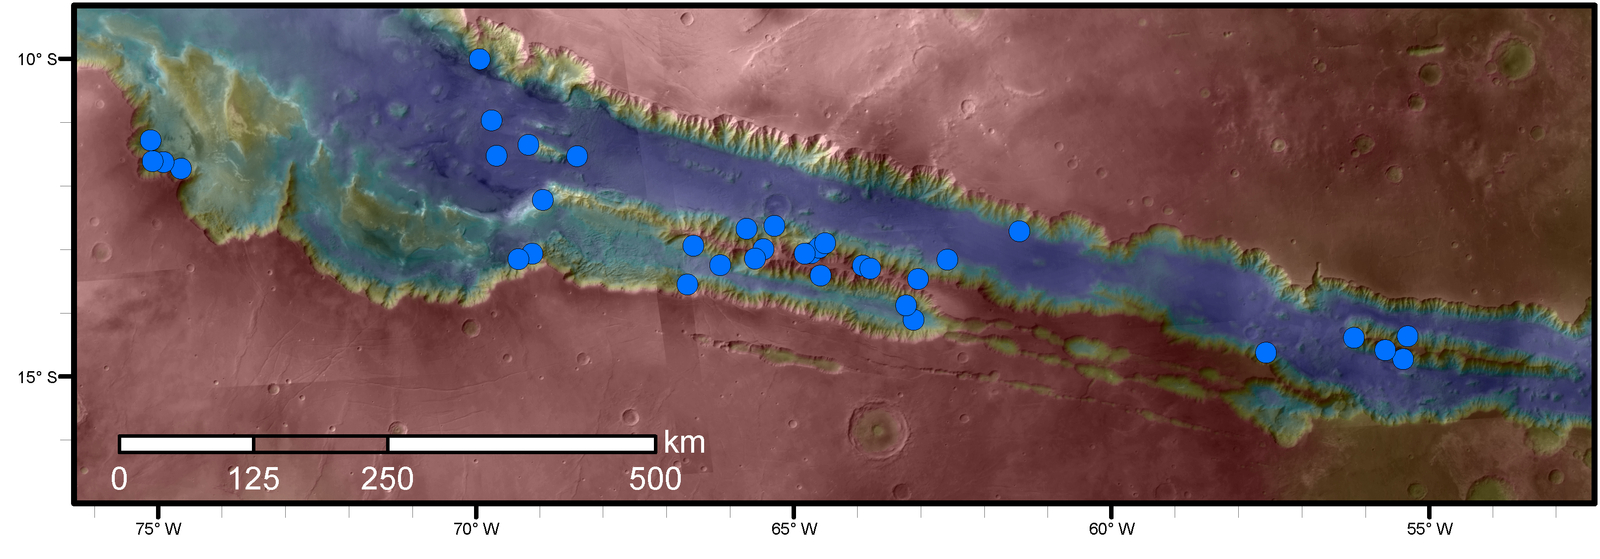 Blue dots on this map indicate sites of recurring slope lineae (RSL) in part of the Valles Marineris canyon network on Mars. RSL are seasonal dark streaks that may be indicators of liquid water. The area mapped here has the highest density of known RSL on Mars.